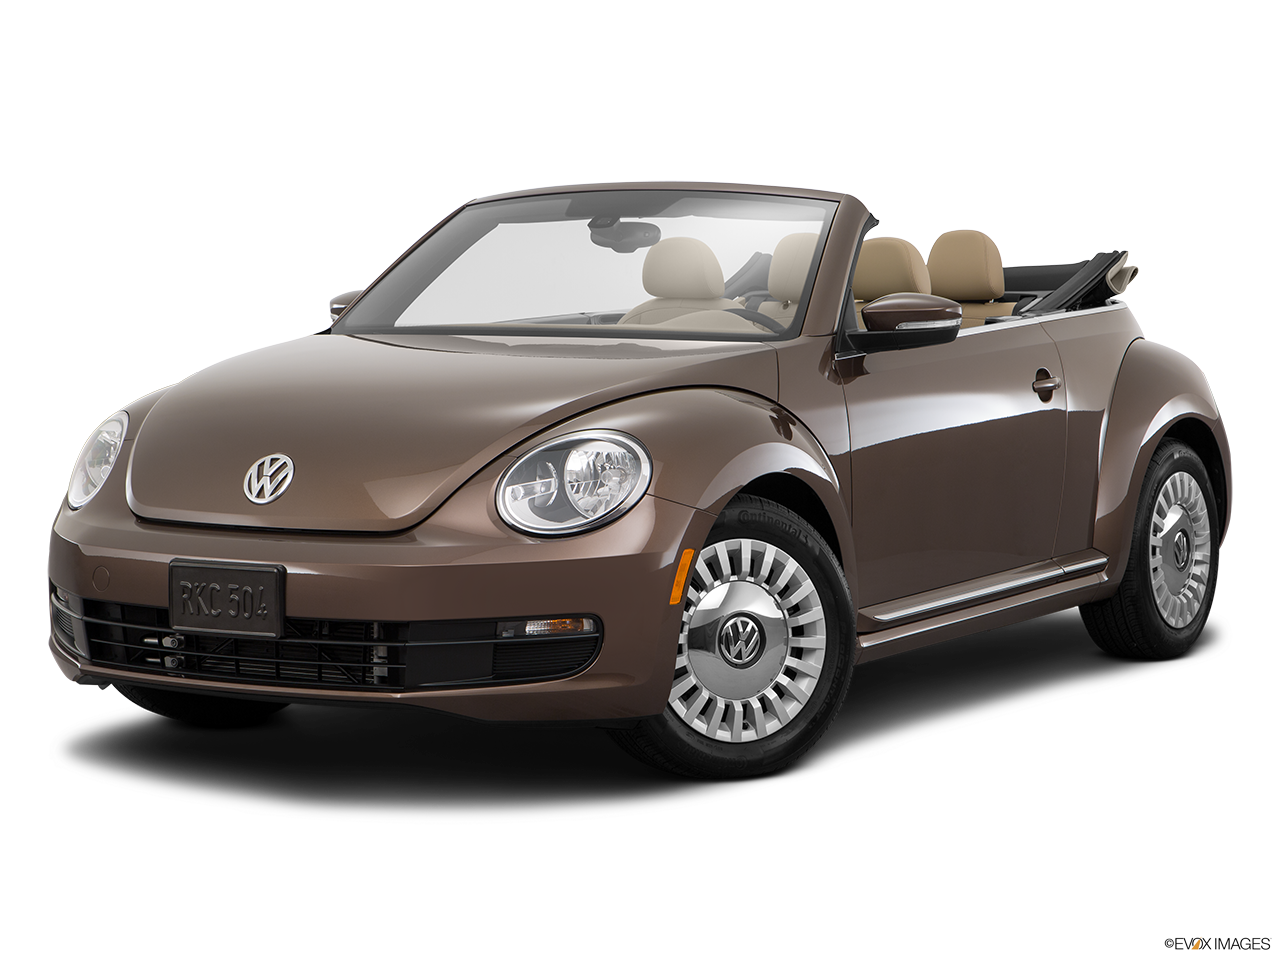 Test Drive A 2016 Volkswagen Beetle at Moss Bros Volkswagen of Moreno Valley in Riverside